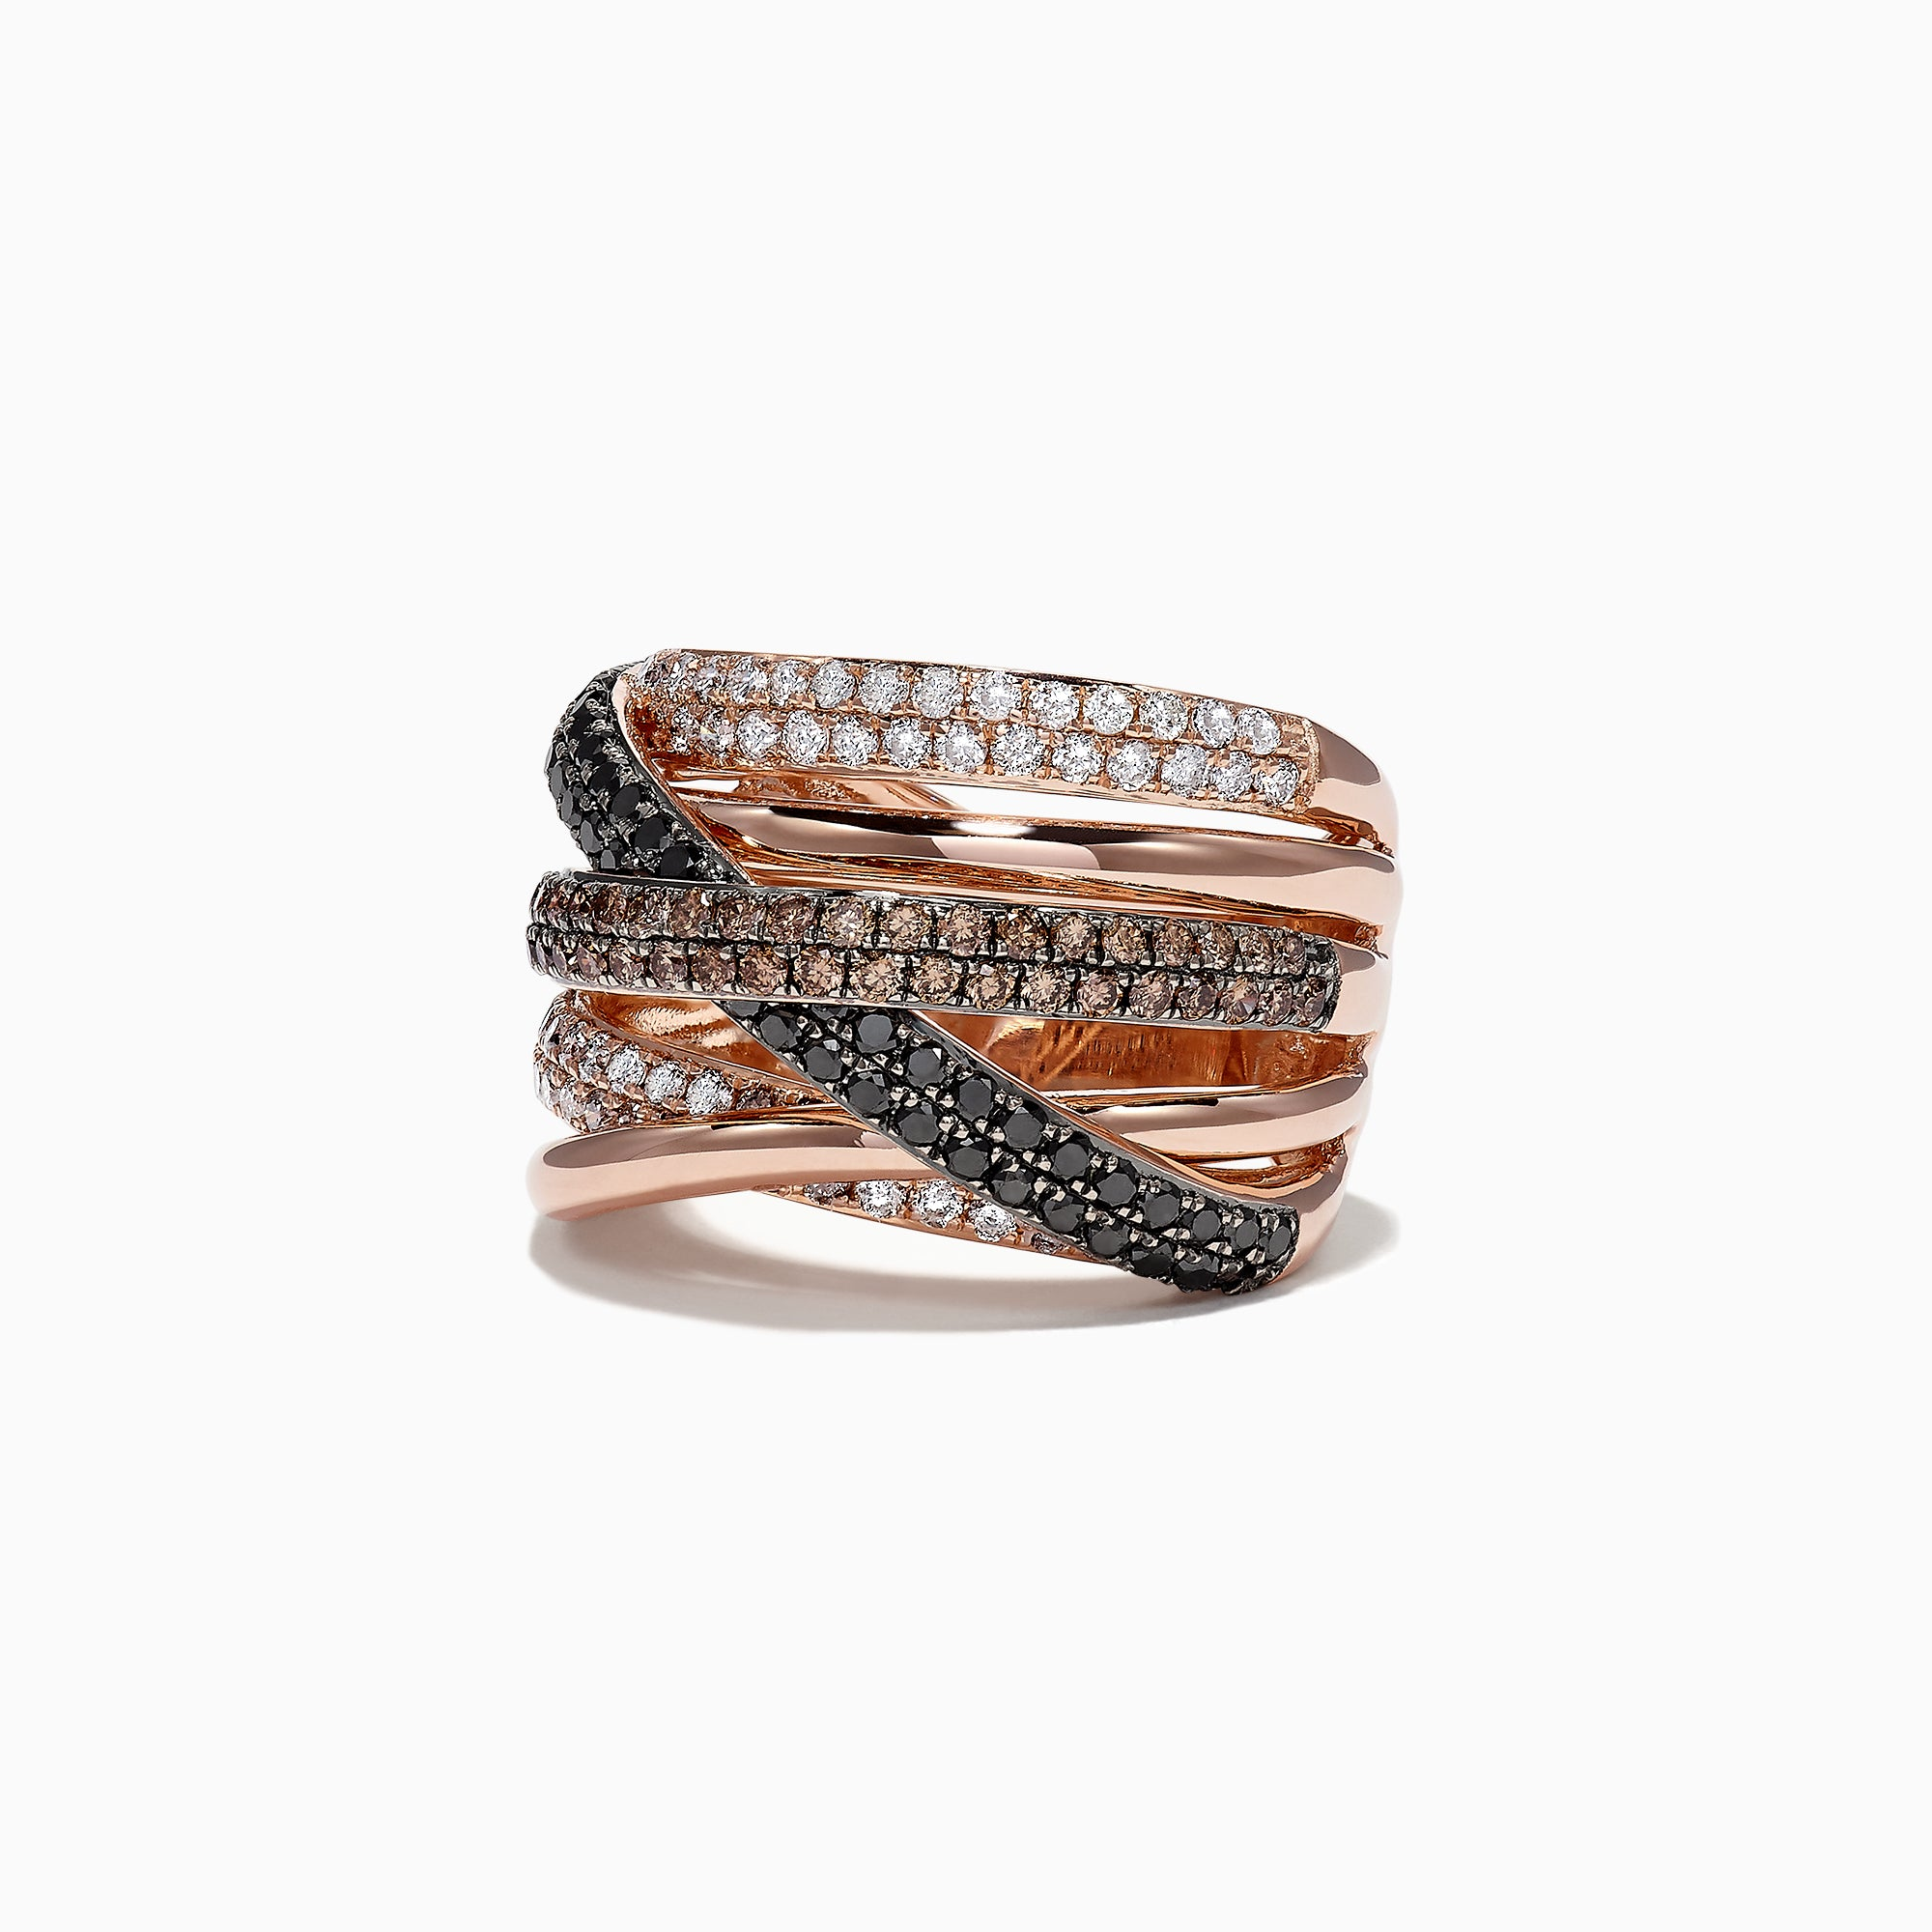 Effy 14K Rose Gold Black, Cognac and White Diamond Ring, 1.47 TCW